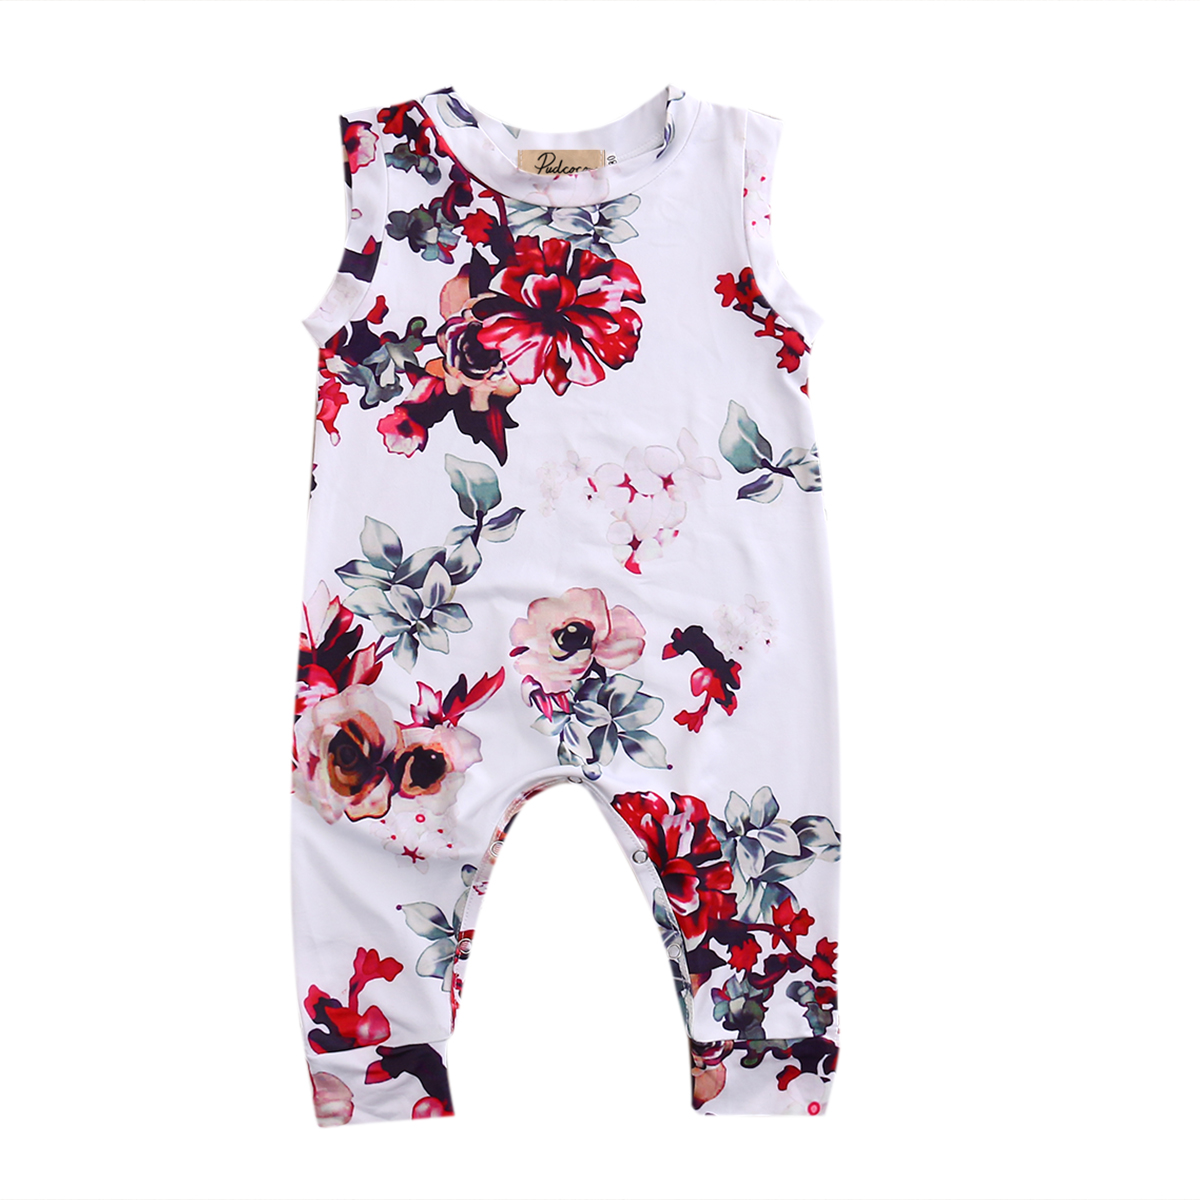 Kid Newborn Summer Girls Clothes Toddler Baby Girl   Romper   Sleeveless Cute Flower Outfits Sunsuit Clothing Baby Girls